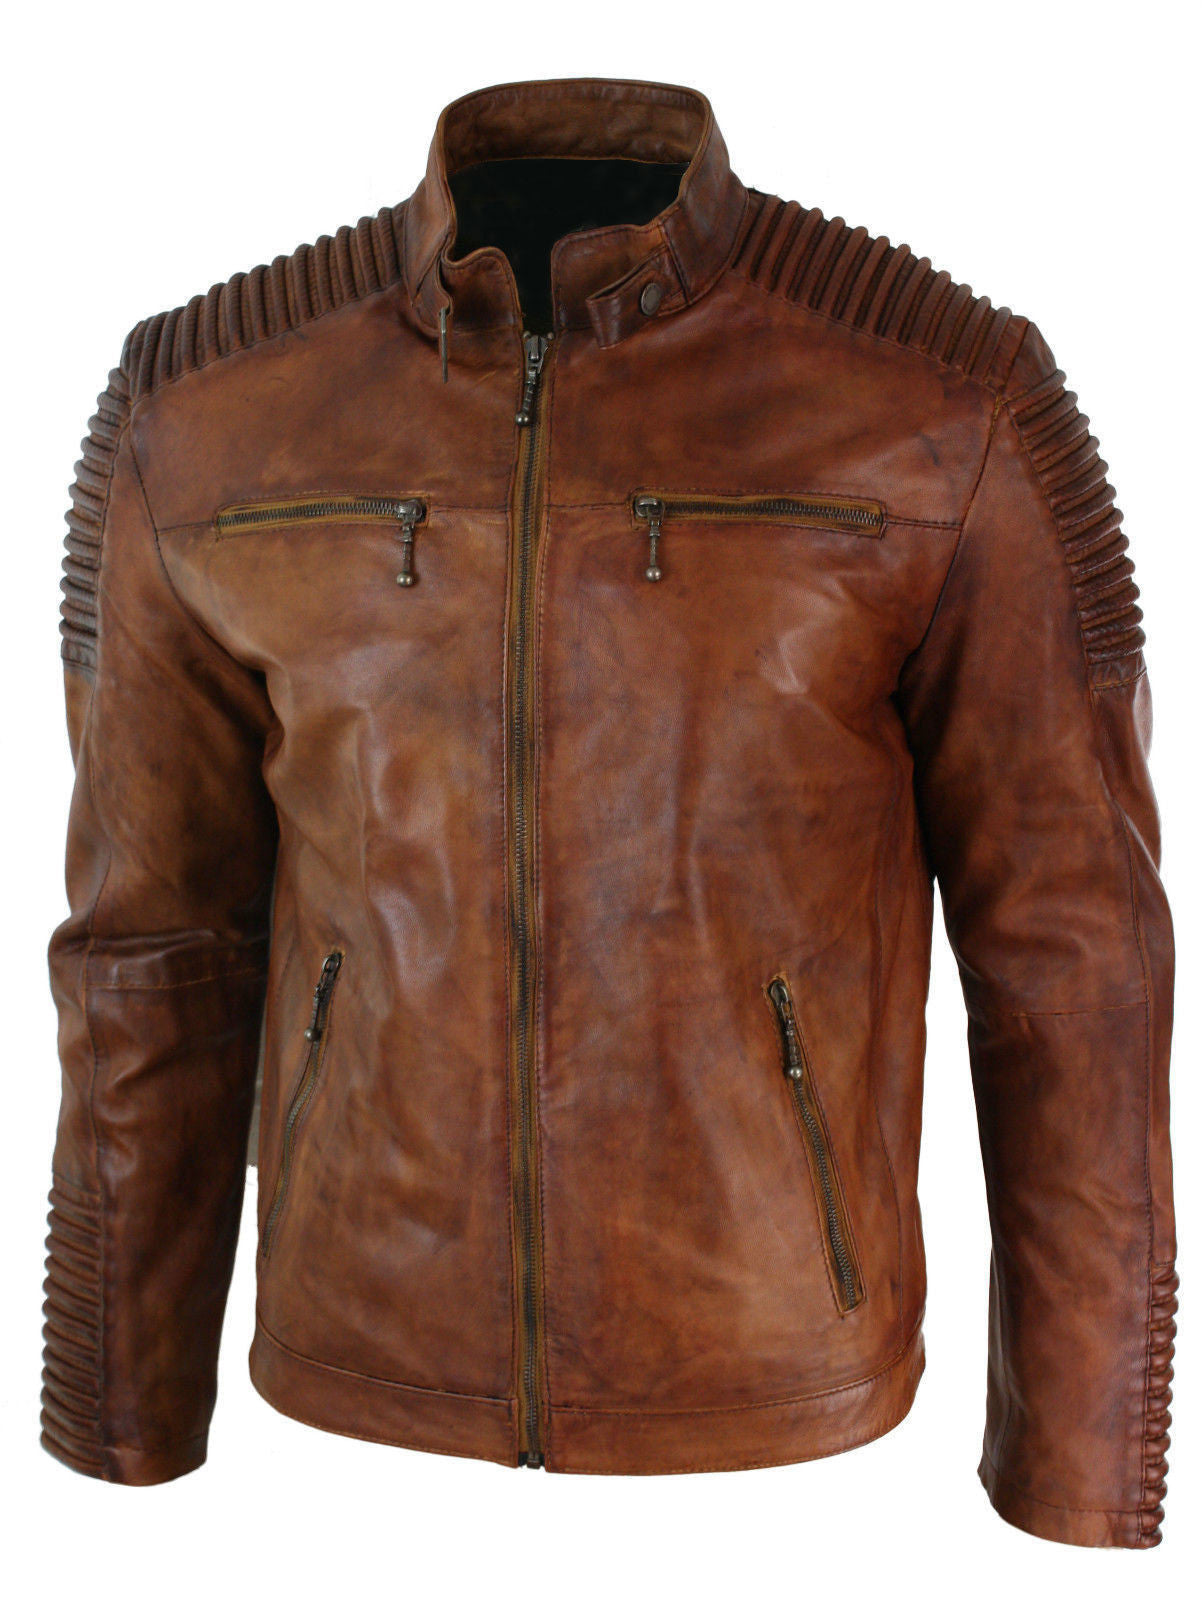 28e3400ae21 Vintage Motorcycle Distressed brown cafe racer leather jacket – The Film  Jackets